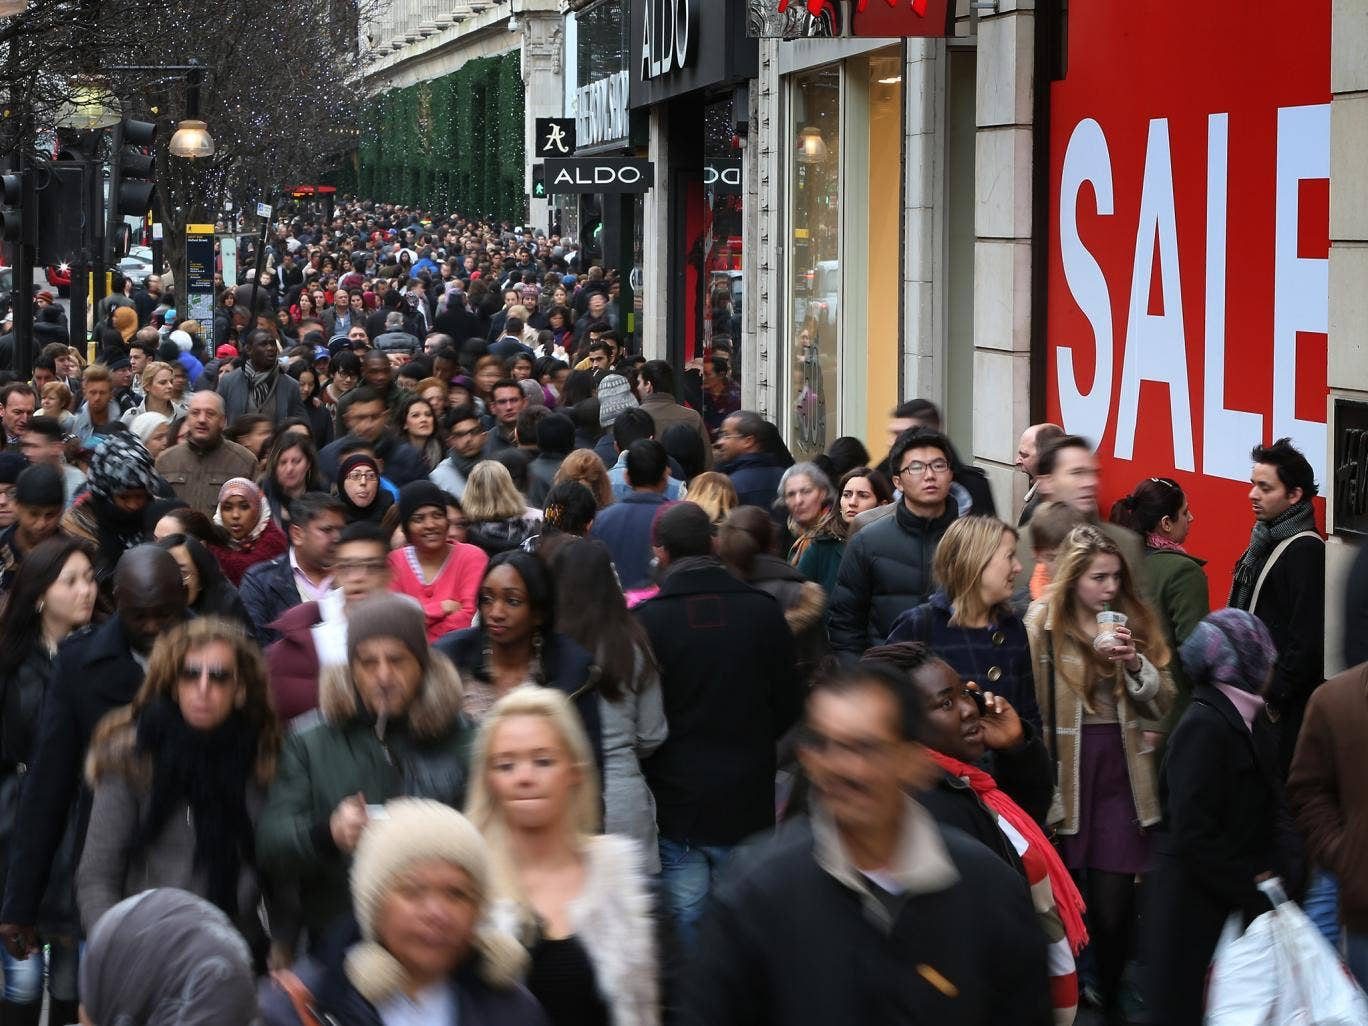 The UAE Ministry of Foreign Affairs said Oxford Street had high rates for fraud, theft and pickpocketing